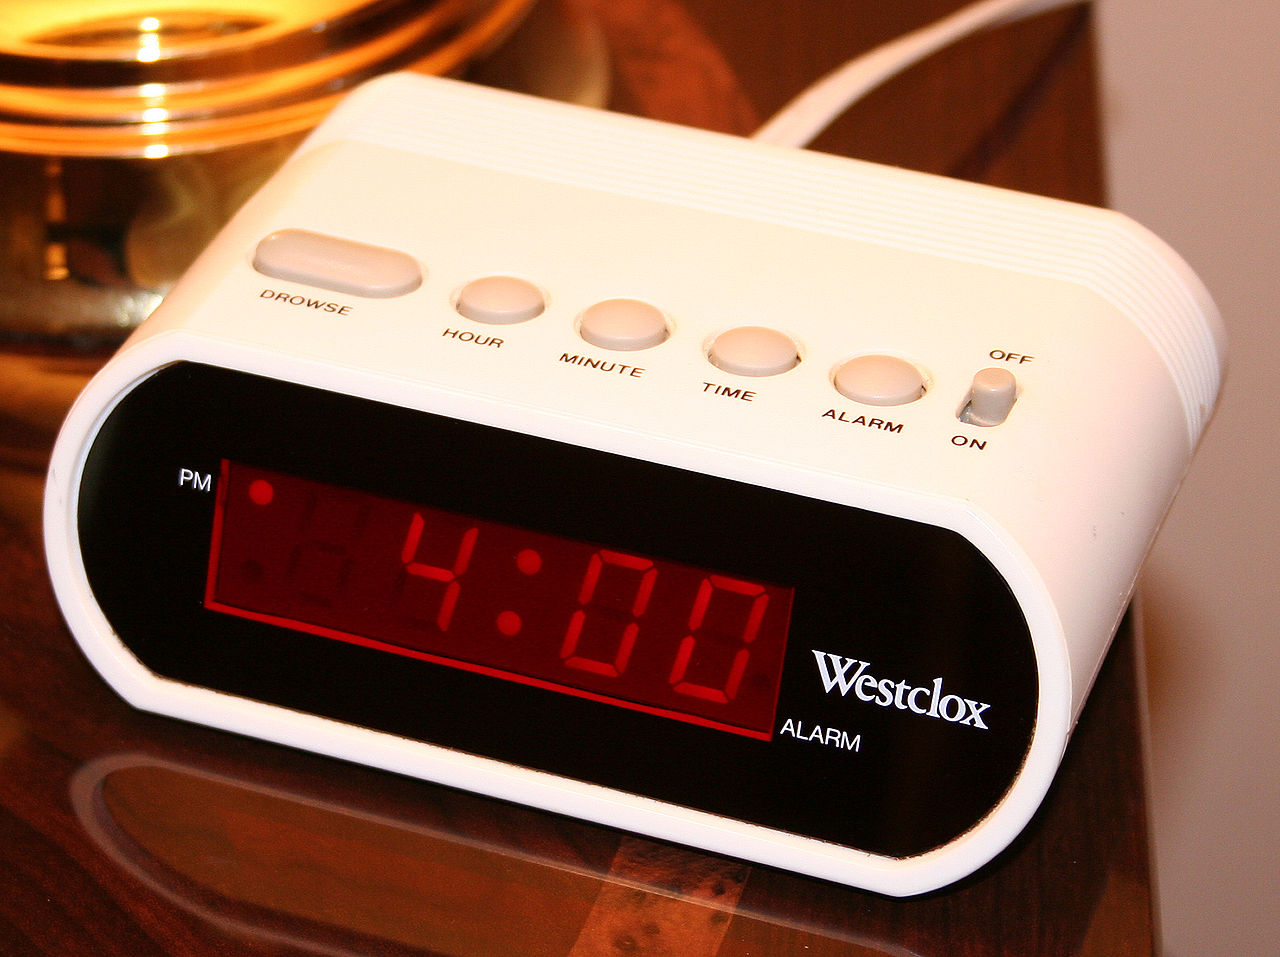 Needing an alarm clock to wake up suggests you may not be meeting your sleep need - Image Credit:  Tysto via Wikimedia Commons